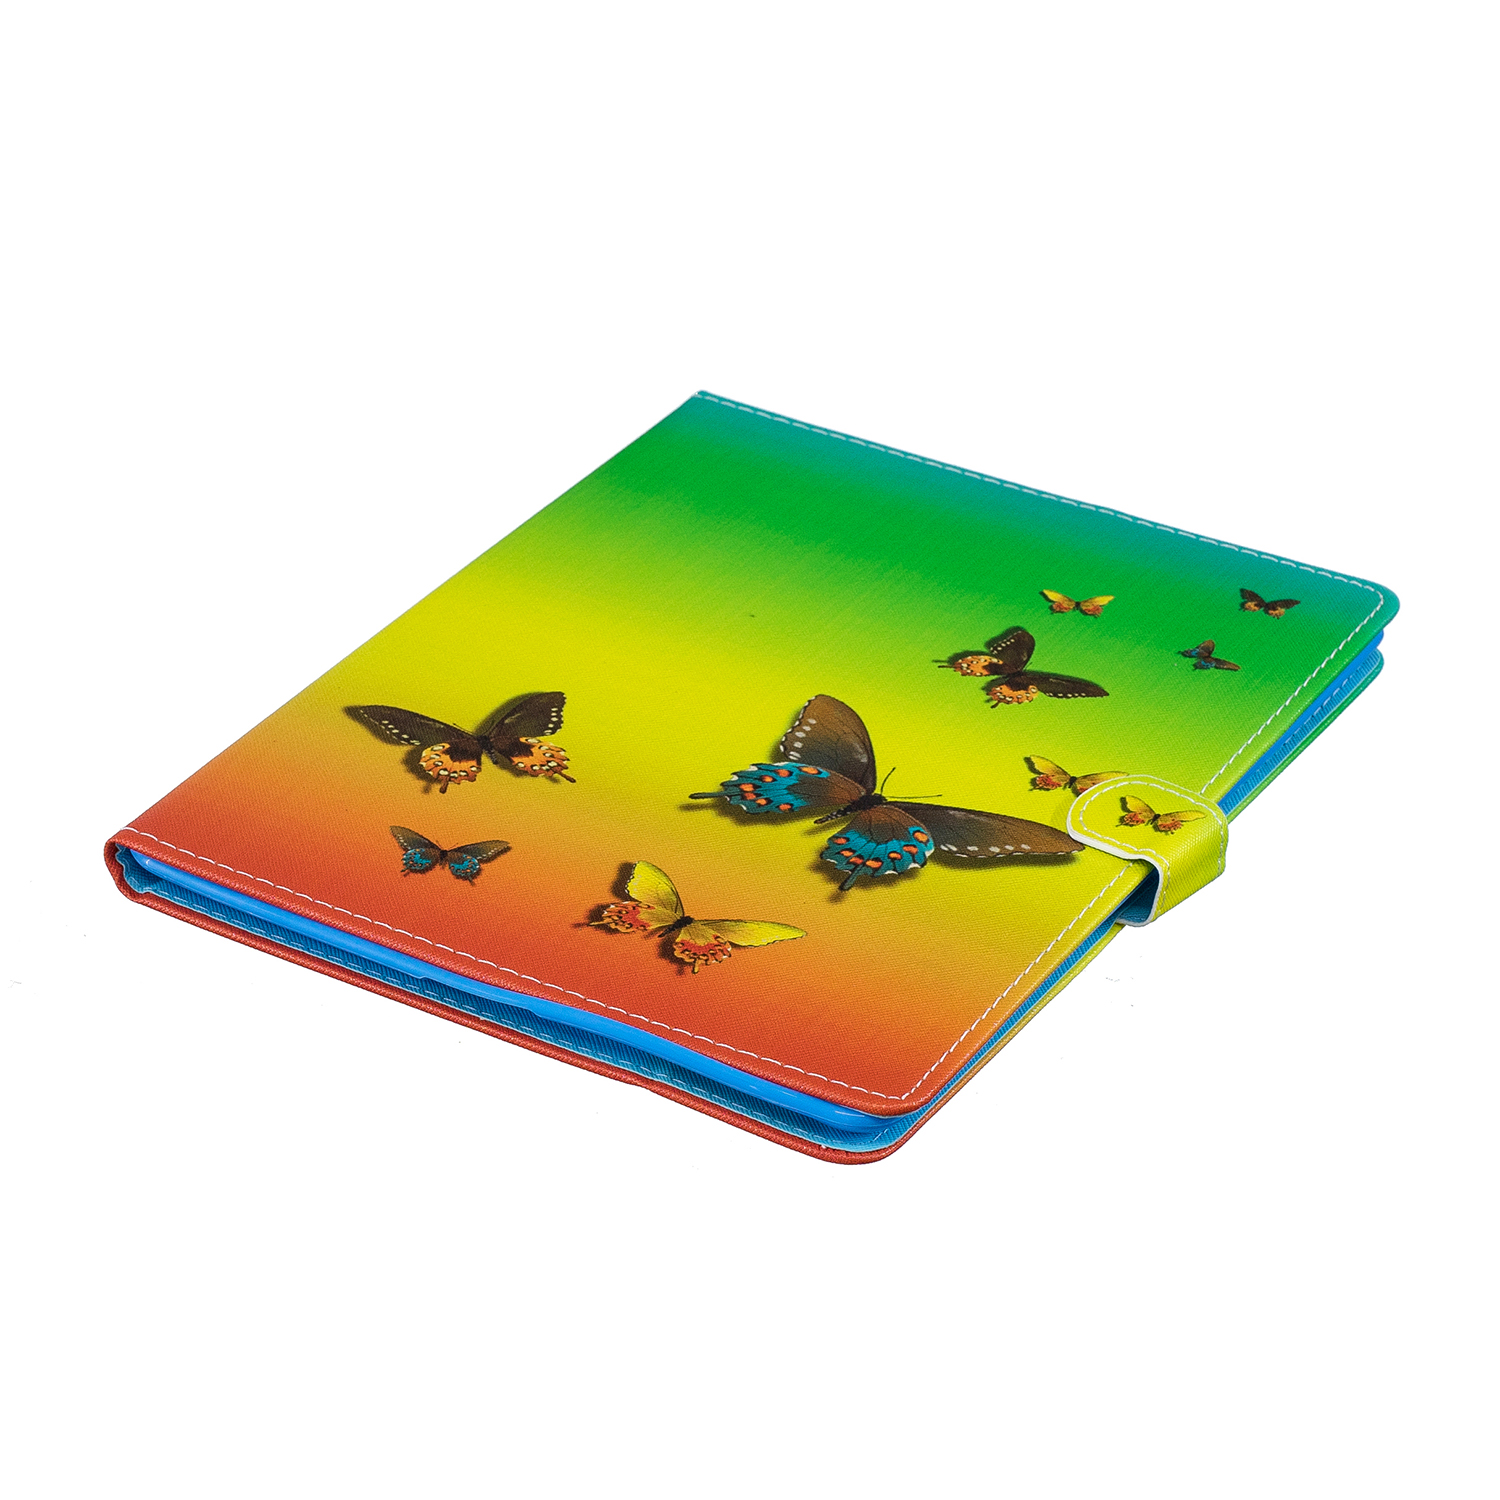 Fashion Painted Flat Protective Leather Case For IPAD 2/3/4 Personality